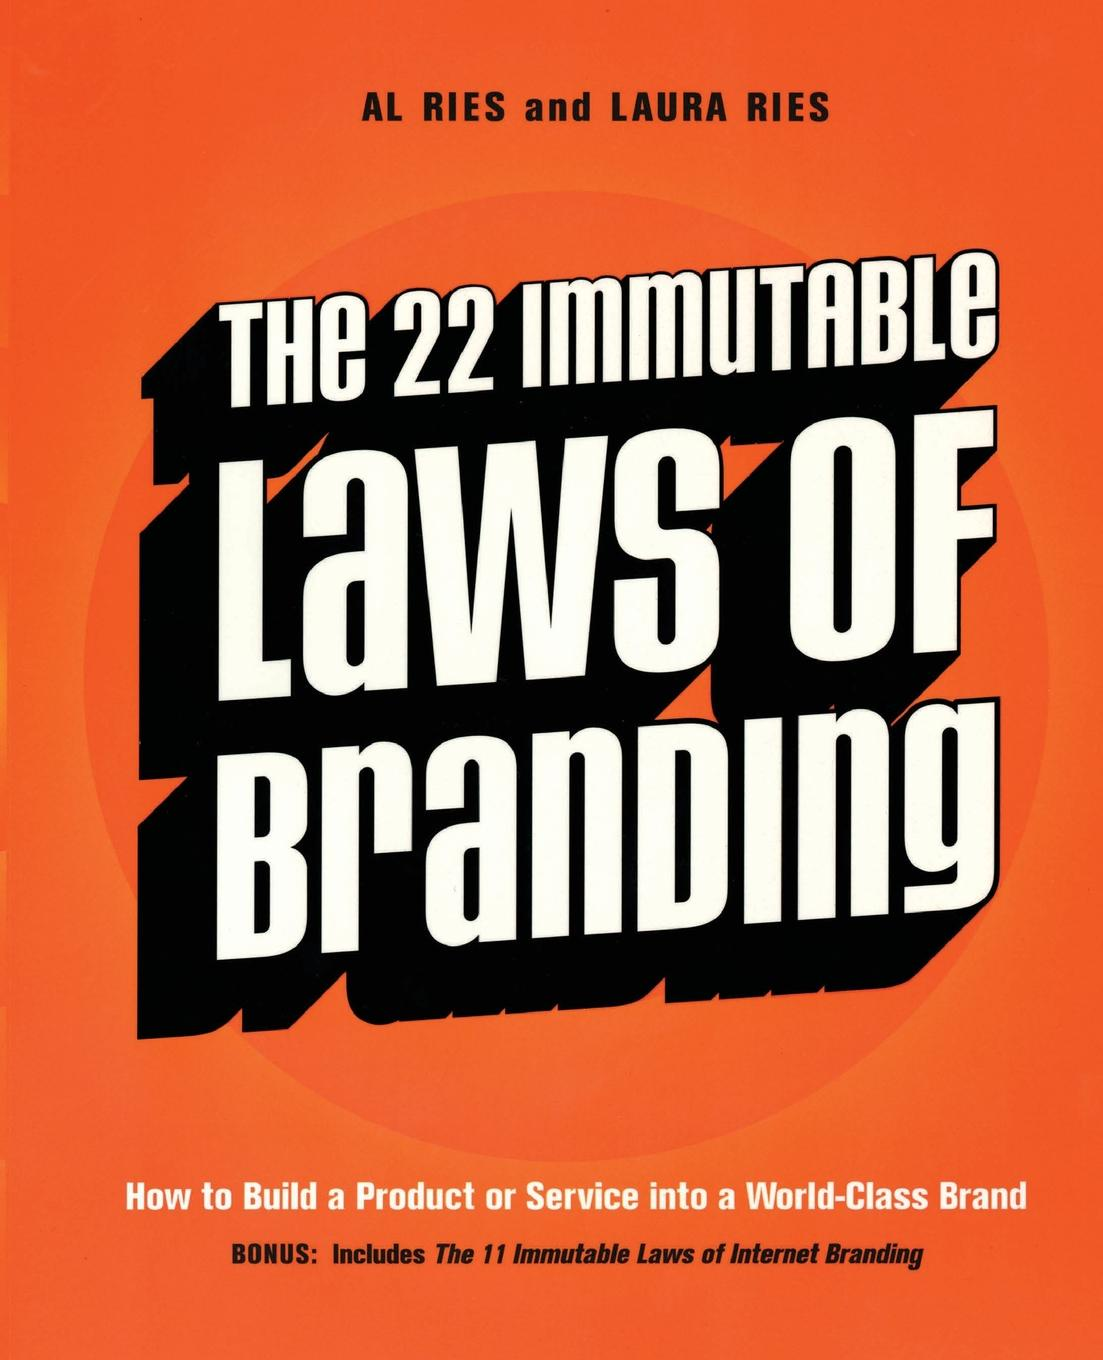 Al Ries 22 Immutable Laws of Branding, The blood laws